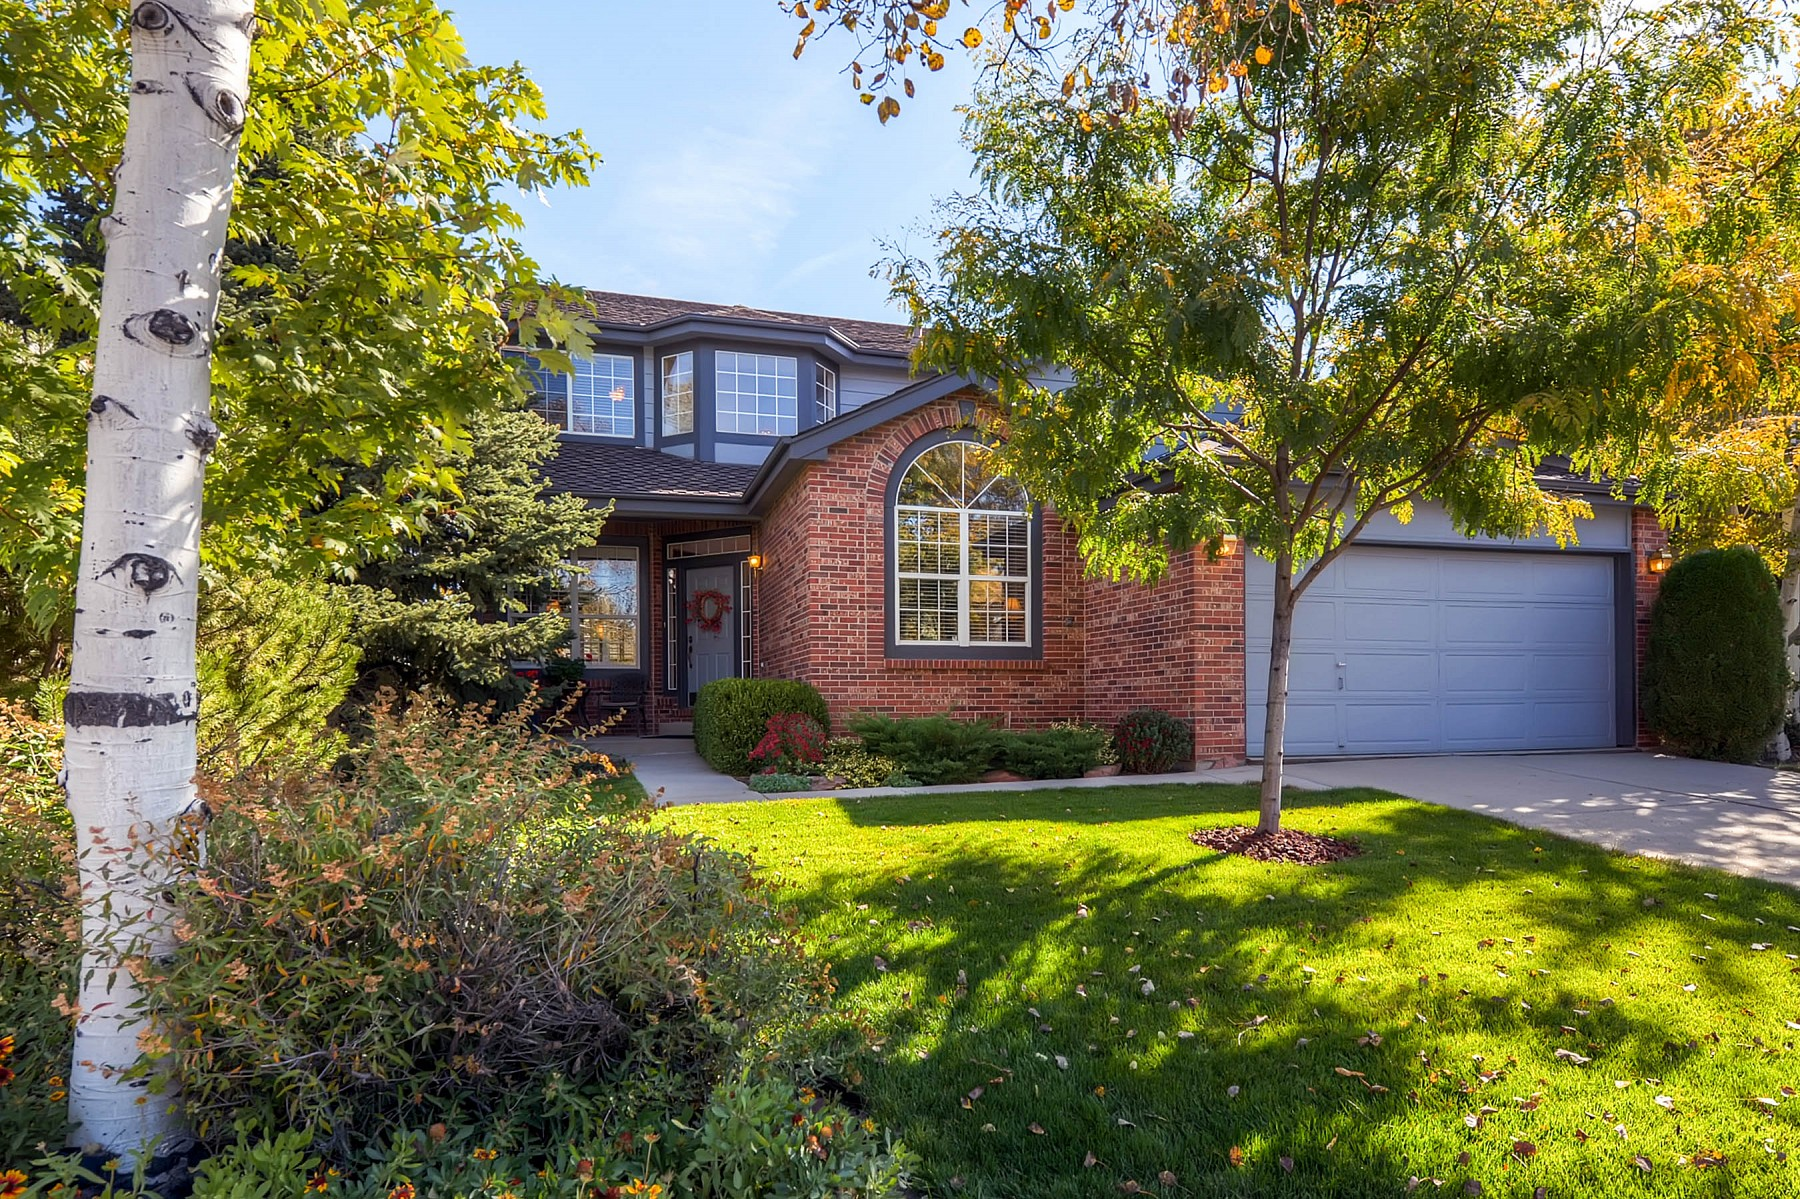 5756 South Garland Way, Littleton, CO 80123